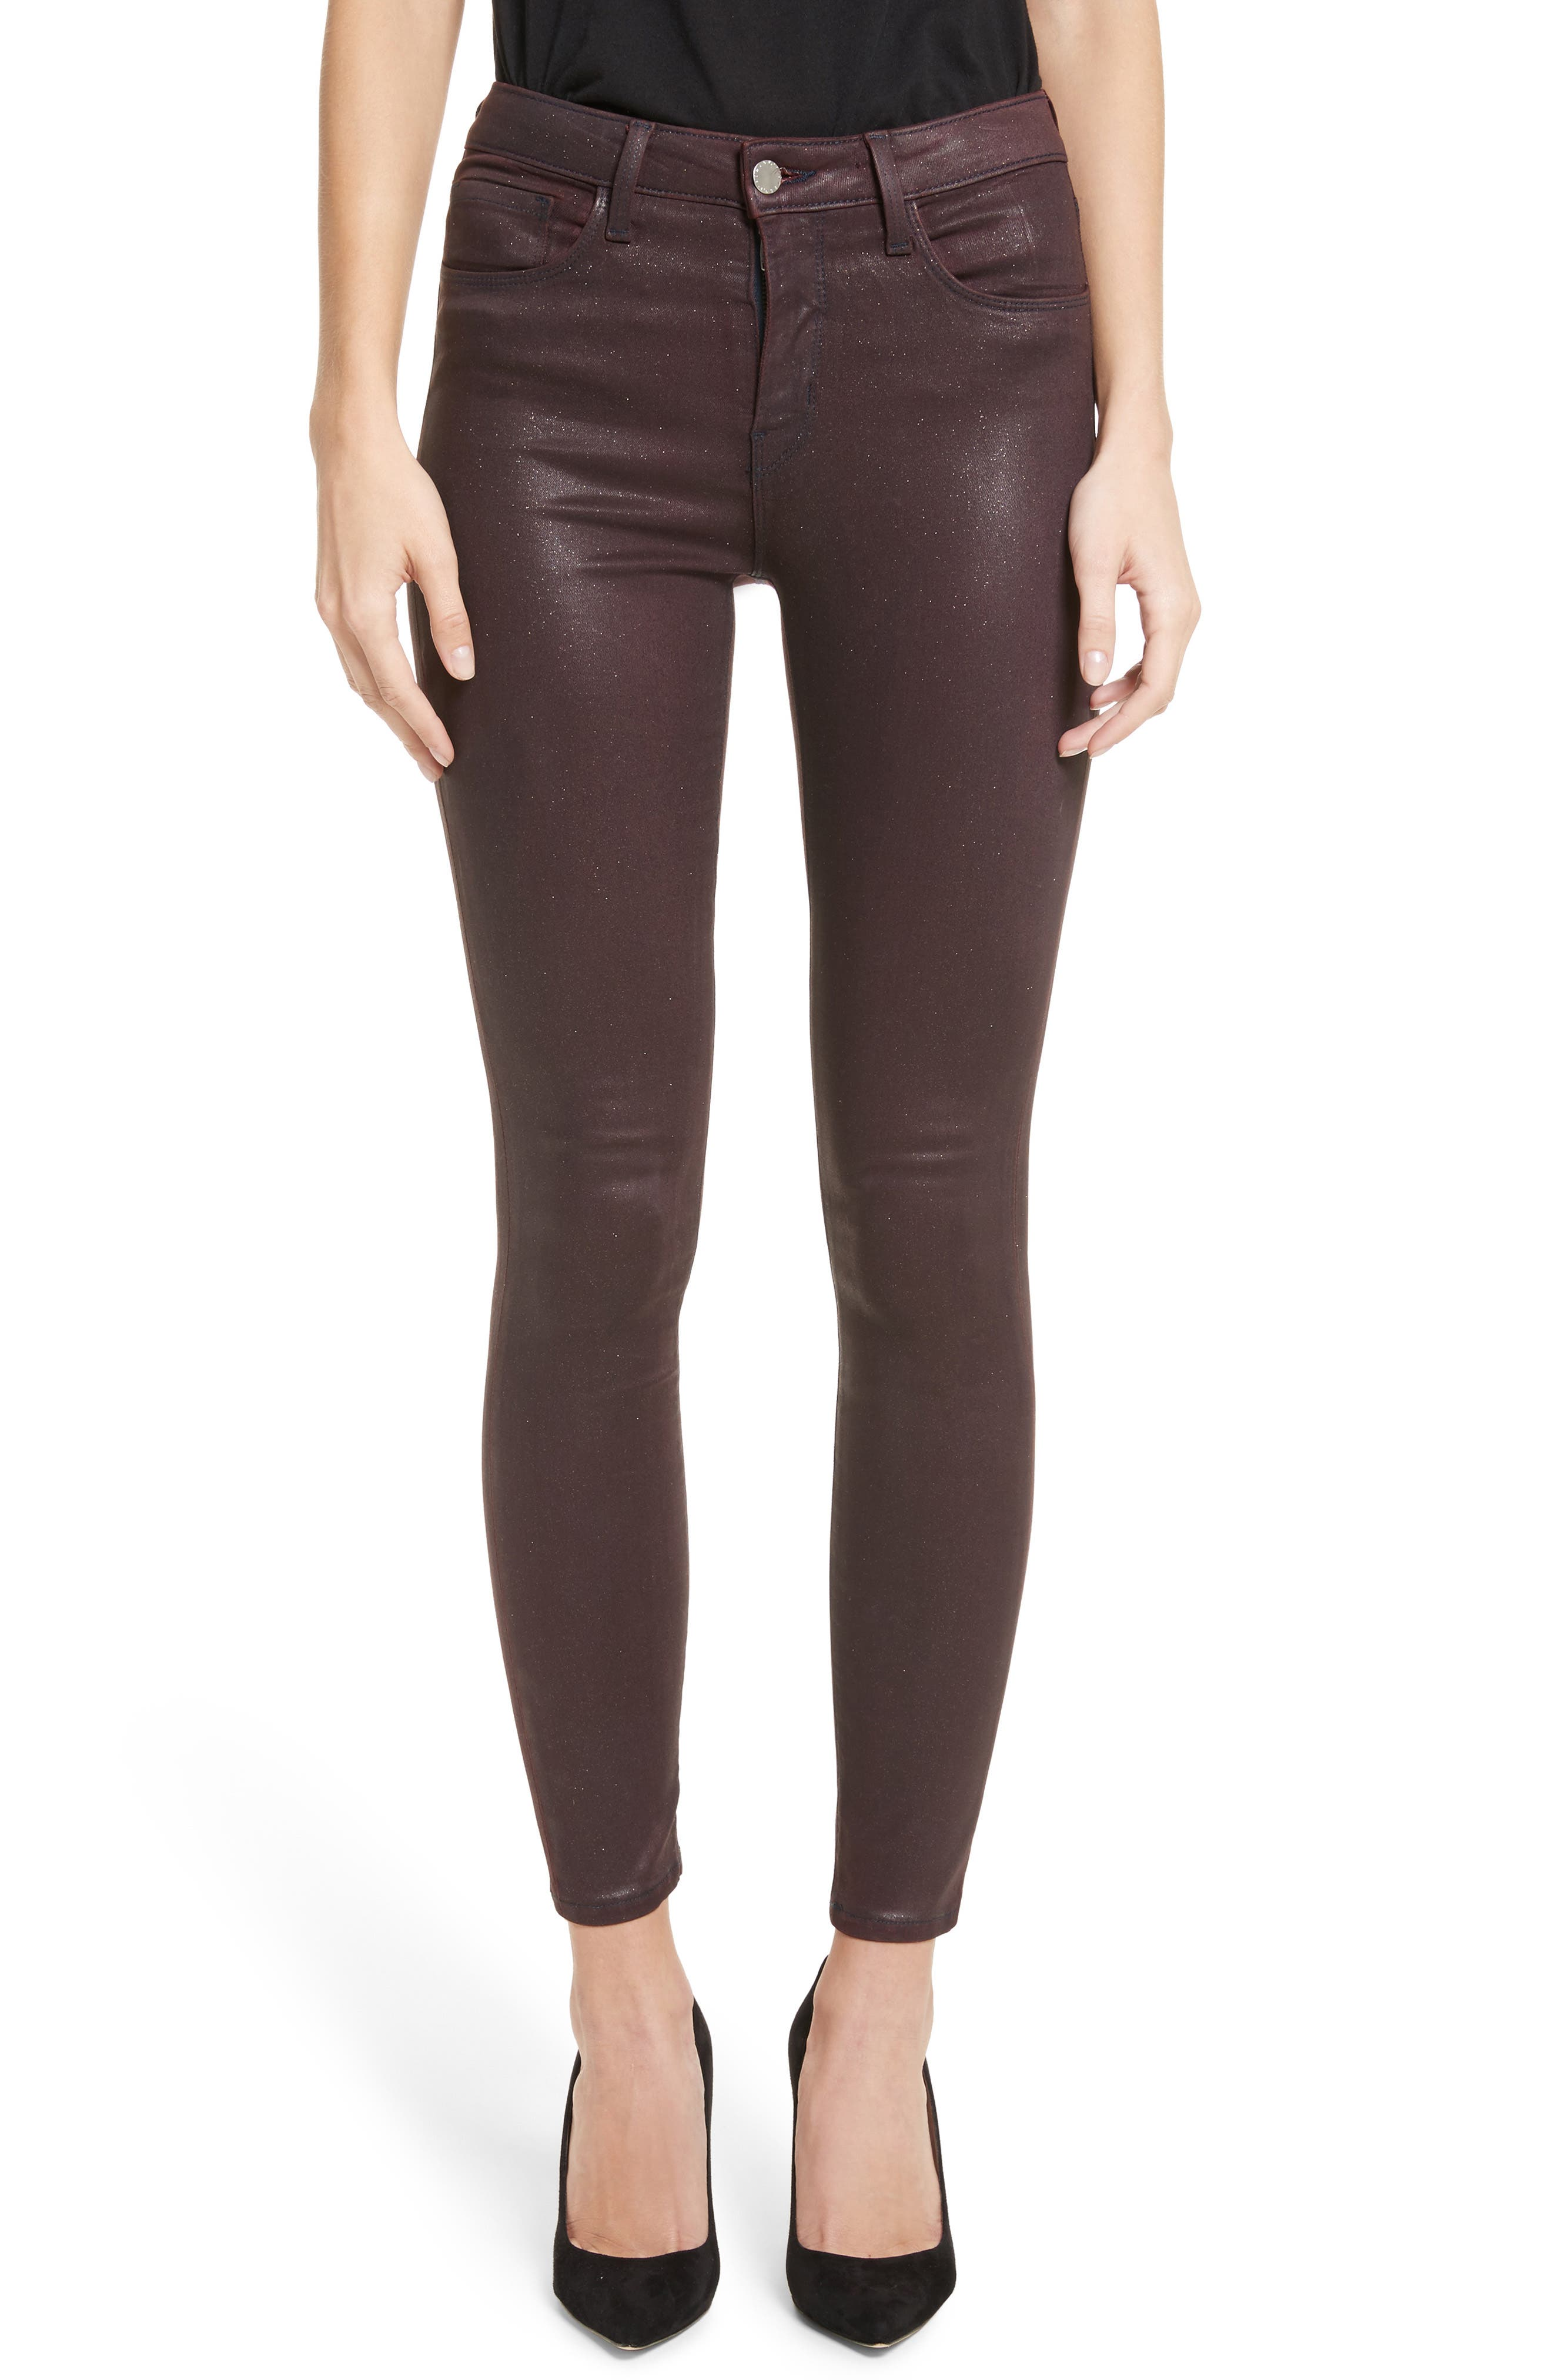 L'AGENCE Margot High Waist Glitter Coated Jeans